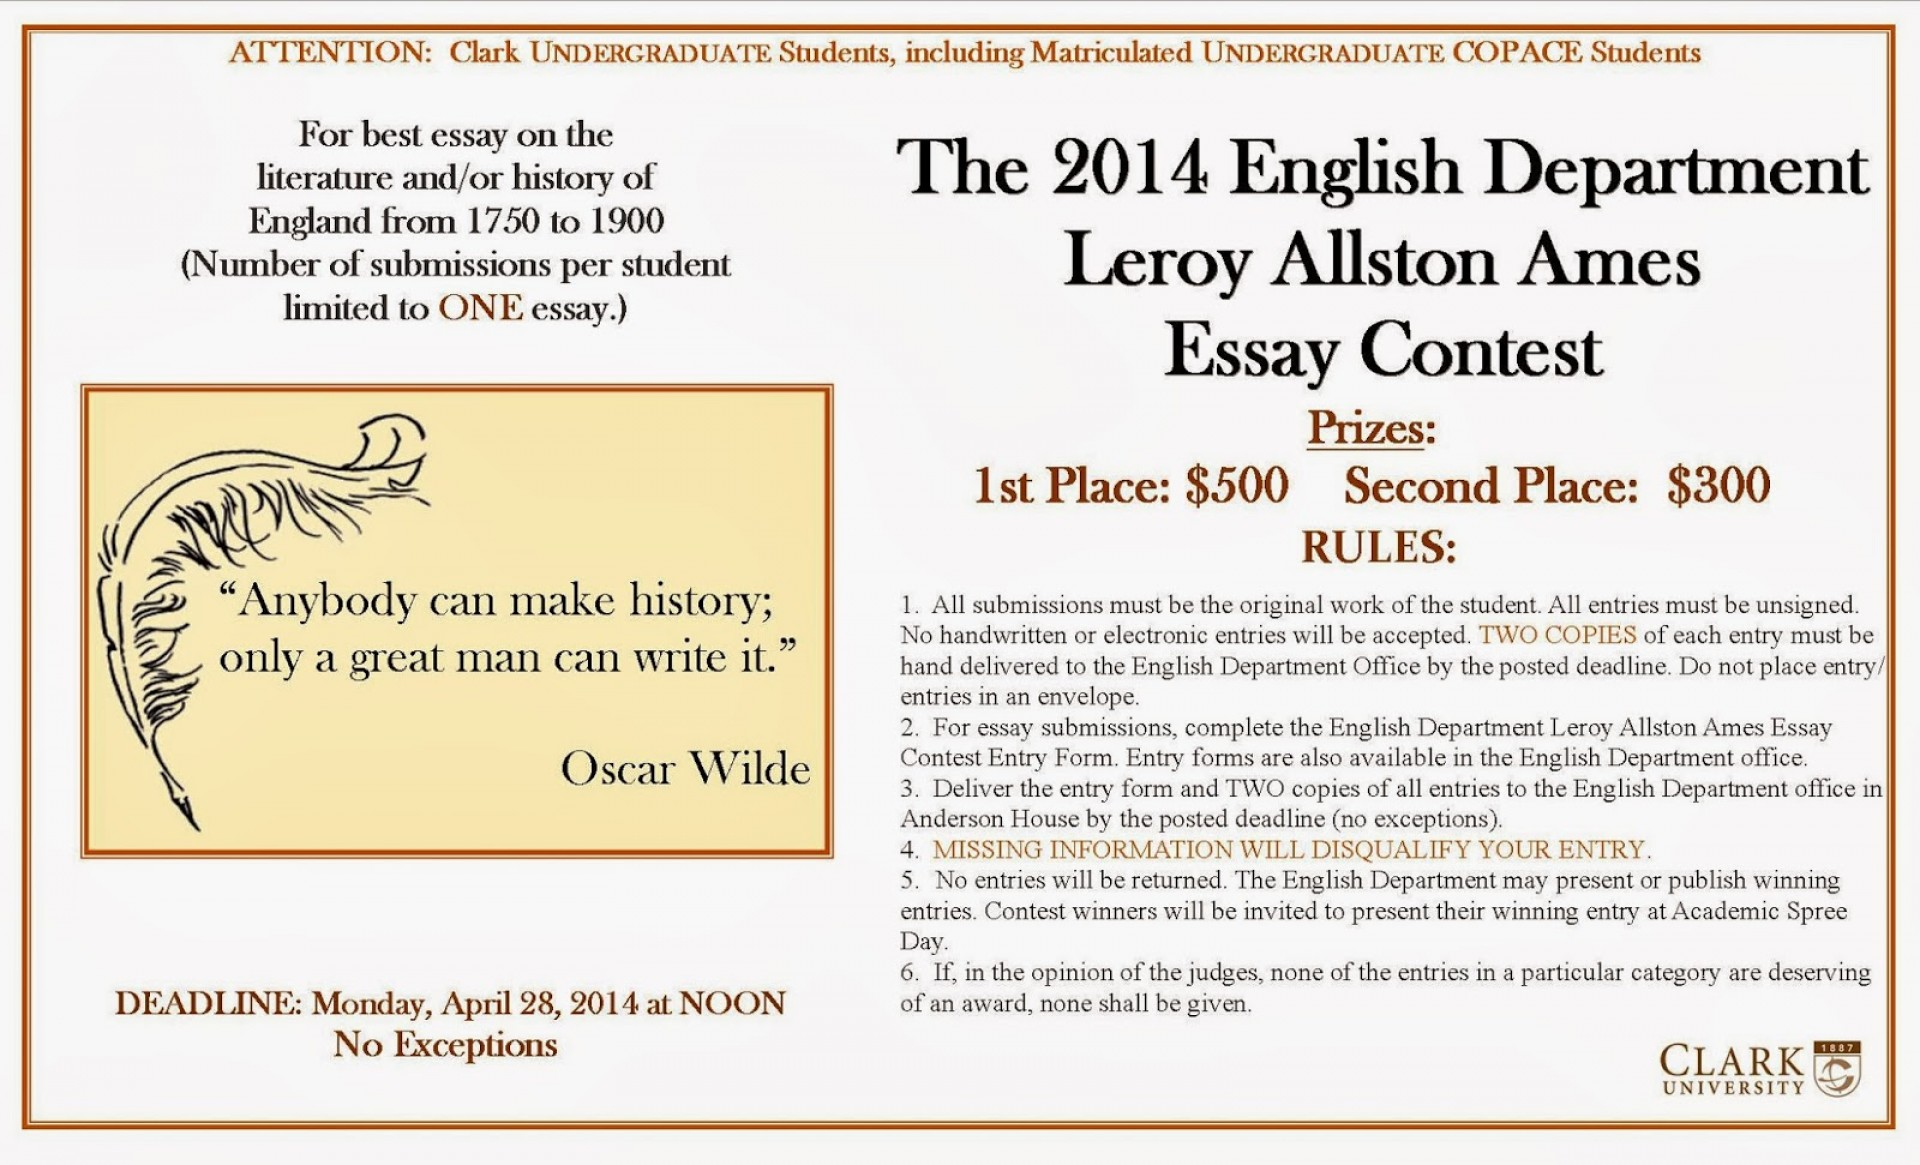 002 Essay Example Contests Imposing 2014 Maryknoll Contest Winners 1920